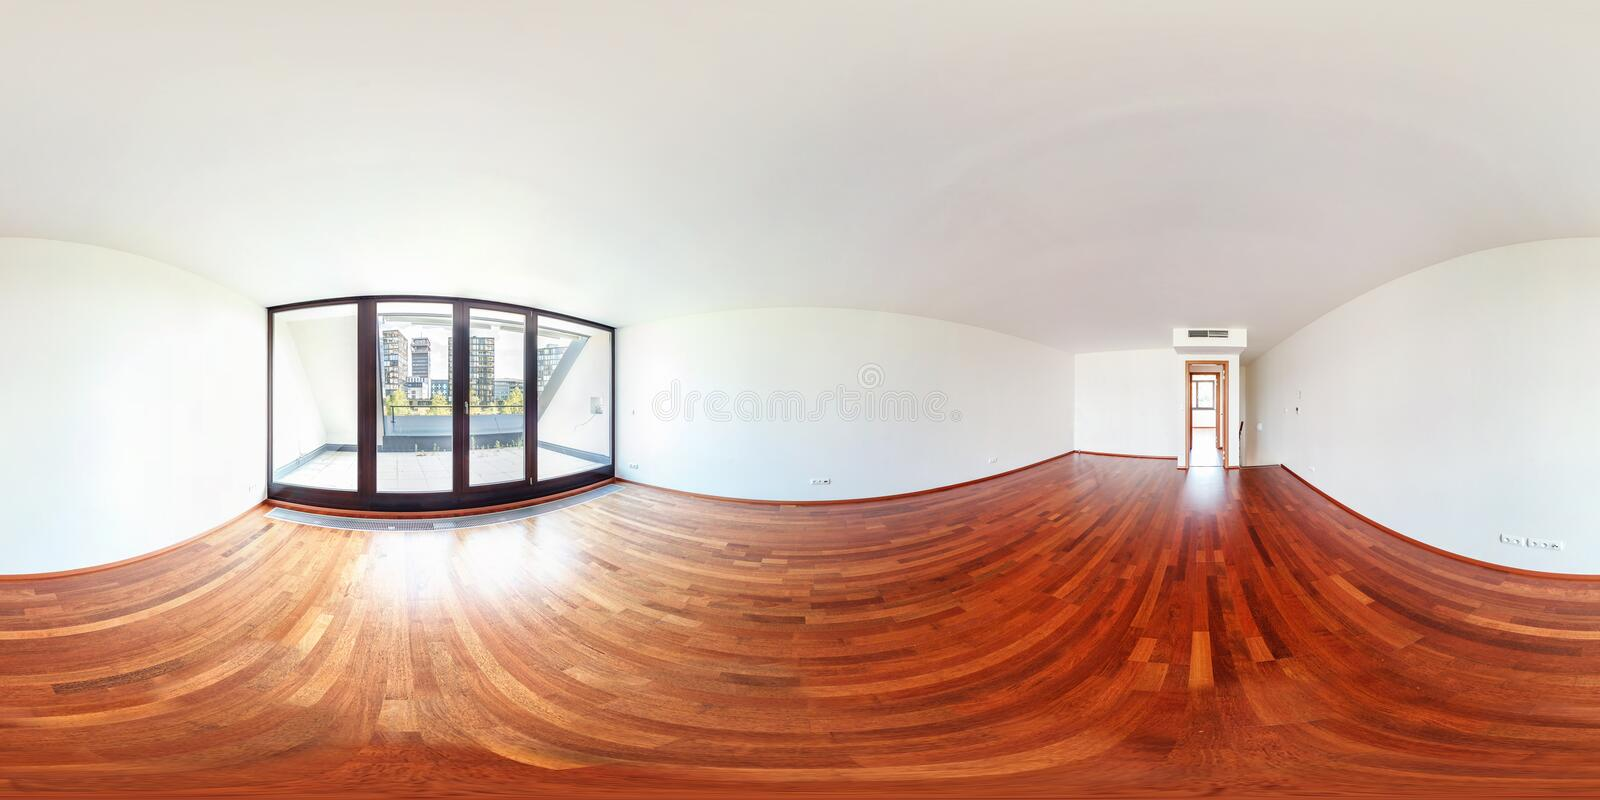 PRAGA, CHECH - AUGUST 5, 2013: Full spherical 360 by 180 degrees seamless panorama in equirectangular equidistant projection,. Panorama in interior empty room royalty free stock photo